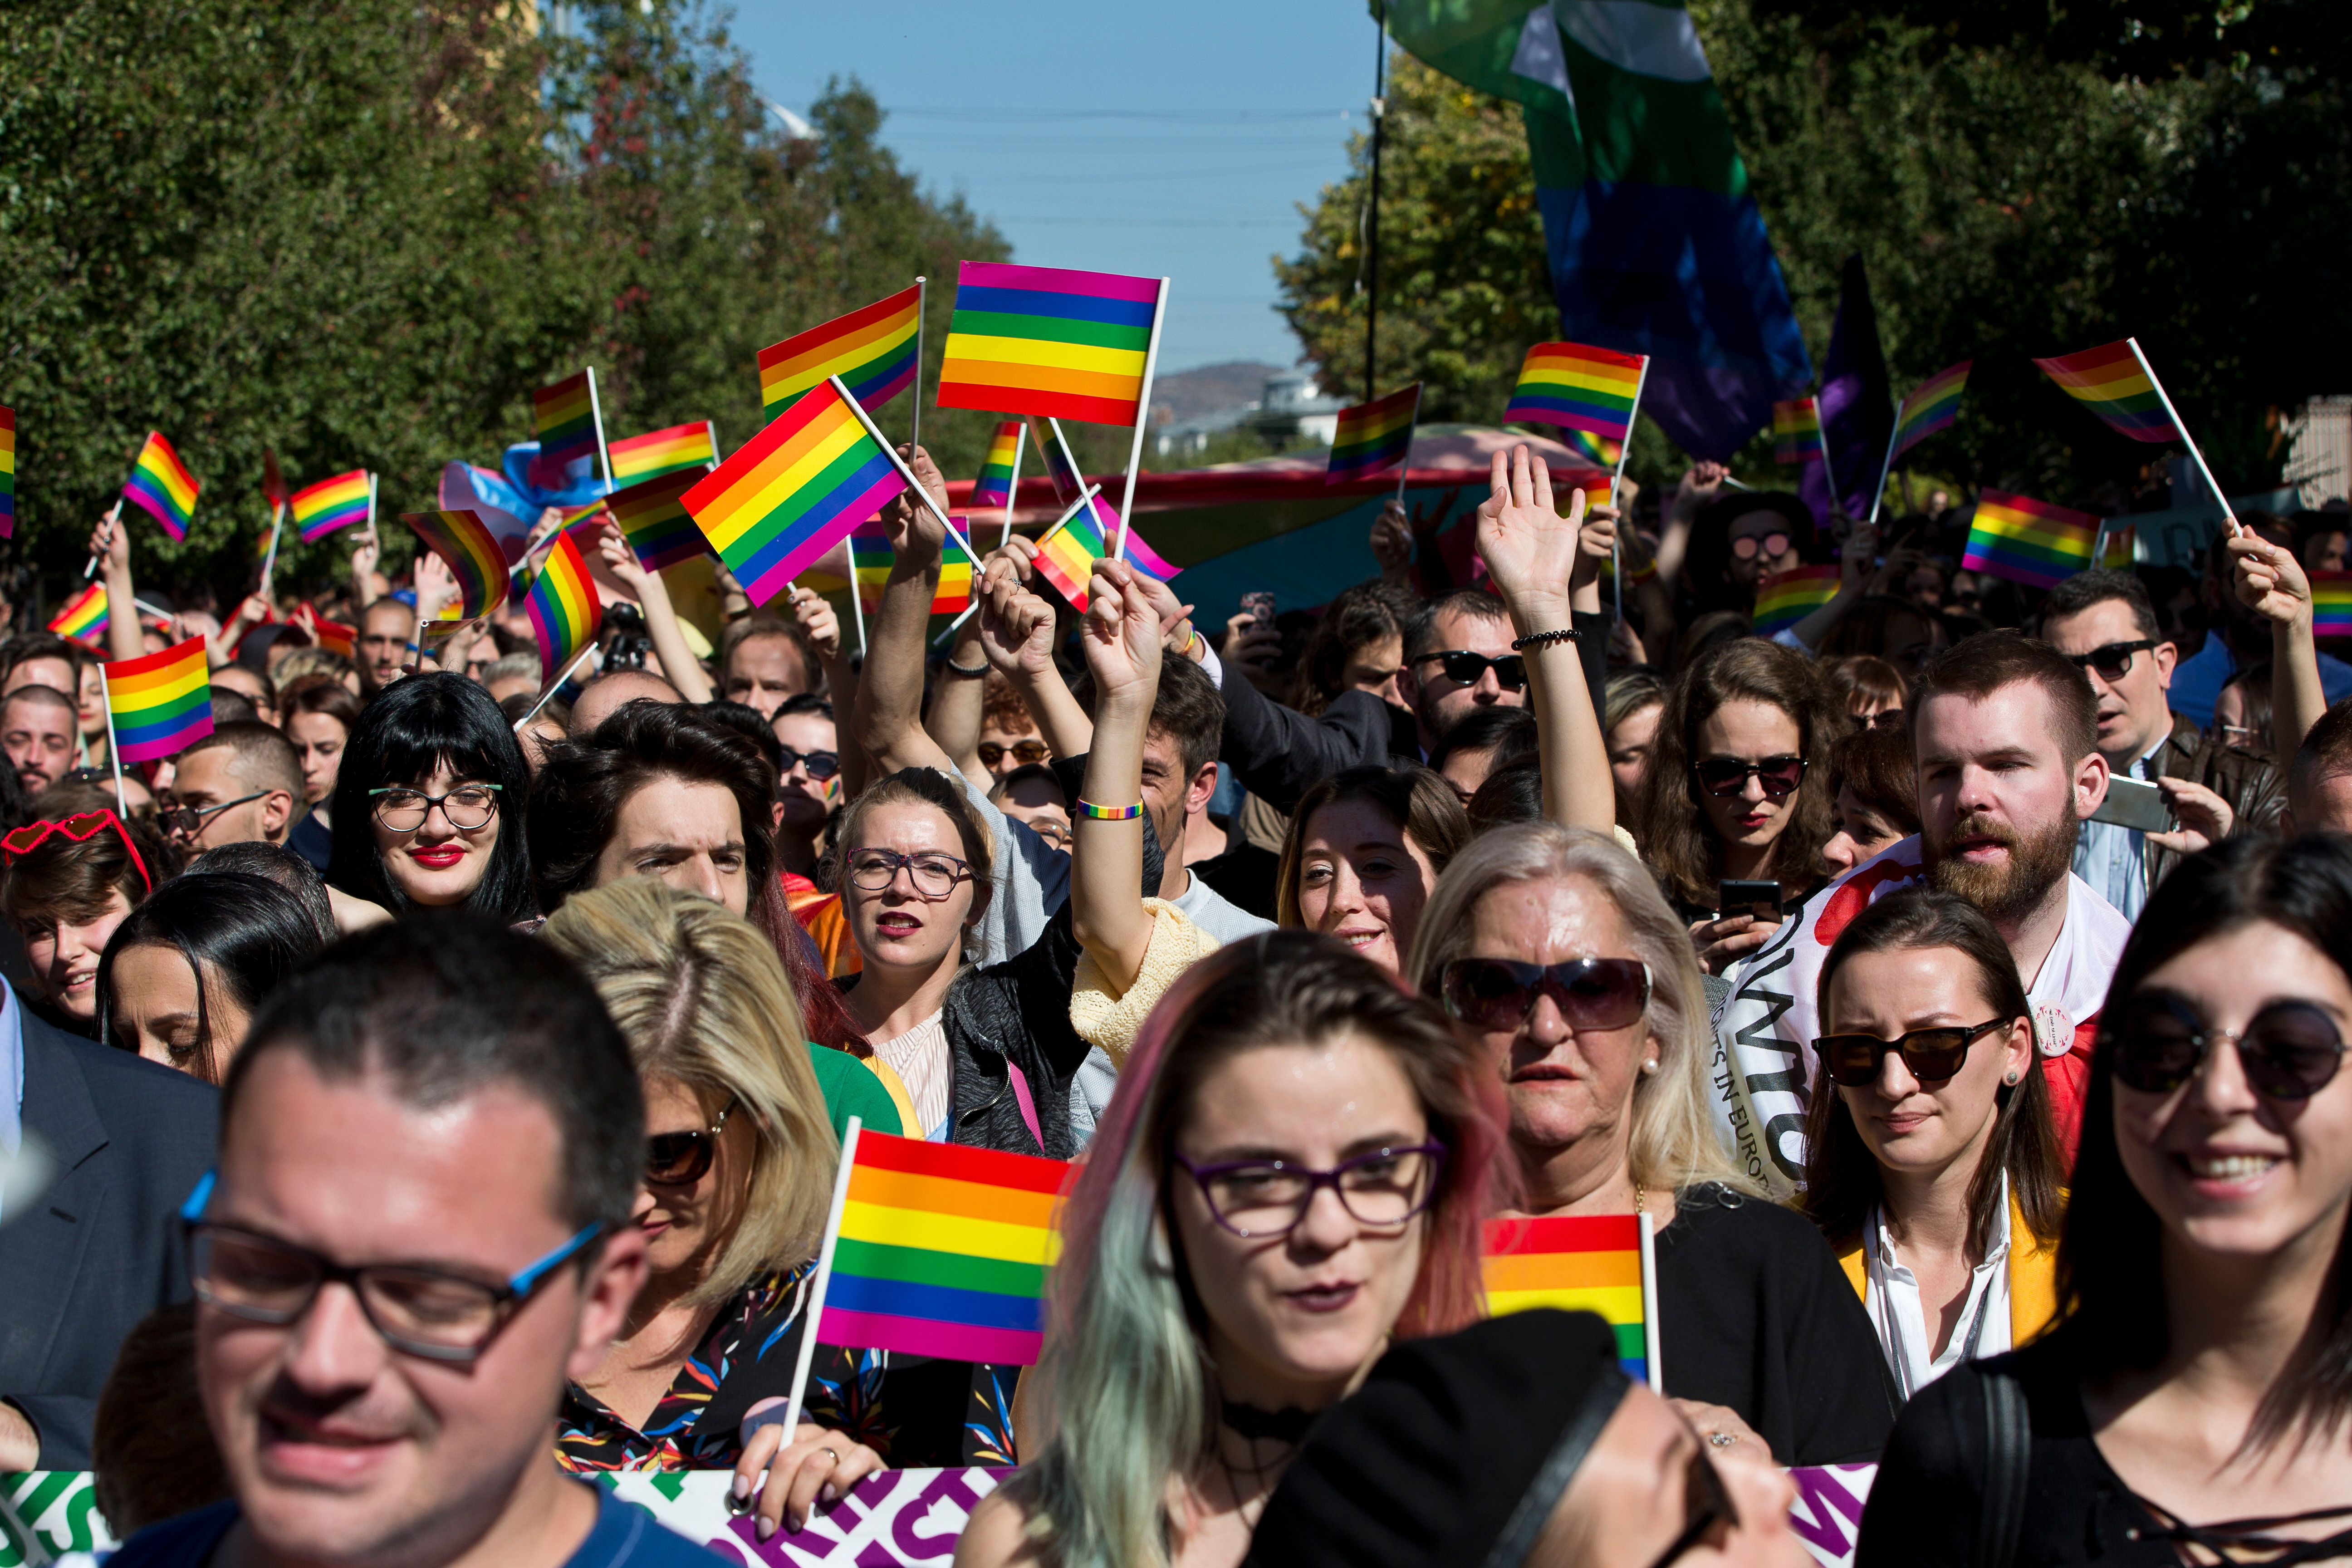 People participate in the pride parade in the Kosovo capital Pristina on Wednesday, Oct. 10, 2018. Hundreds of people in Kosovo have held a gay pride parade for the second straight year in the capital. The gay community has asked for more freedom of expression and non-discrimination, calling on society to be more tolerant and accept diversity. (AP Photo/Visar Kryeziu)